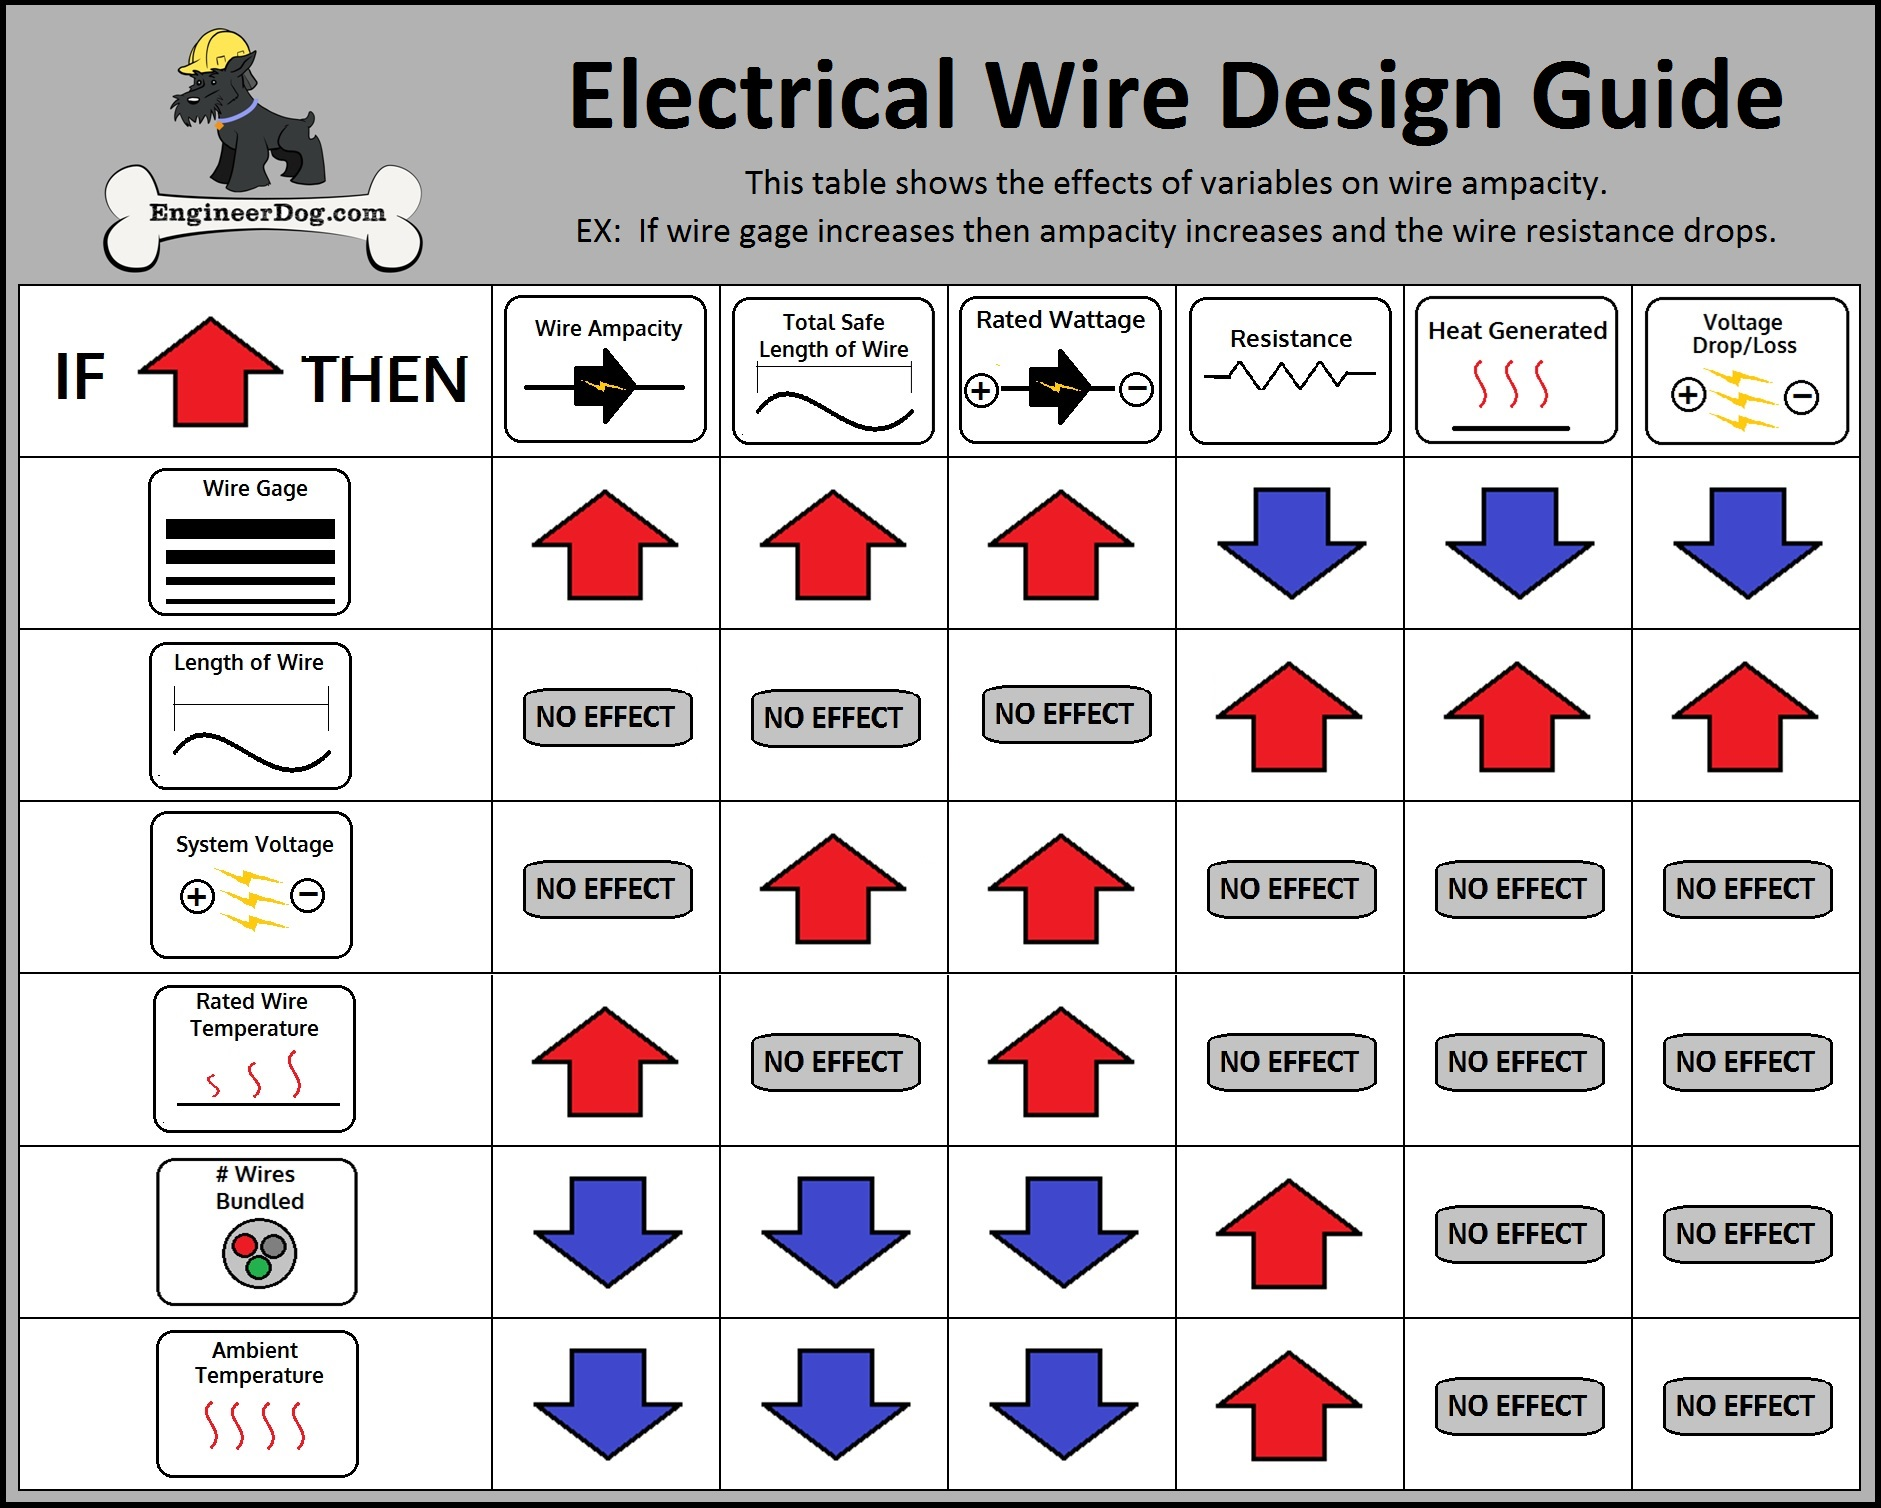 Dorable speaker wire chart model best images for wiring diagram fancy speaker wire gauge and distance chart pictures electrical keyboard keysfo Image collections